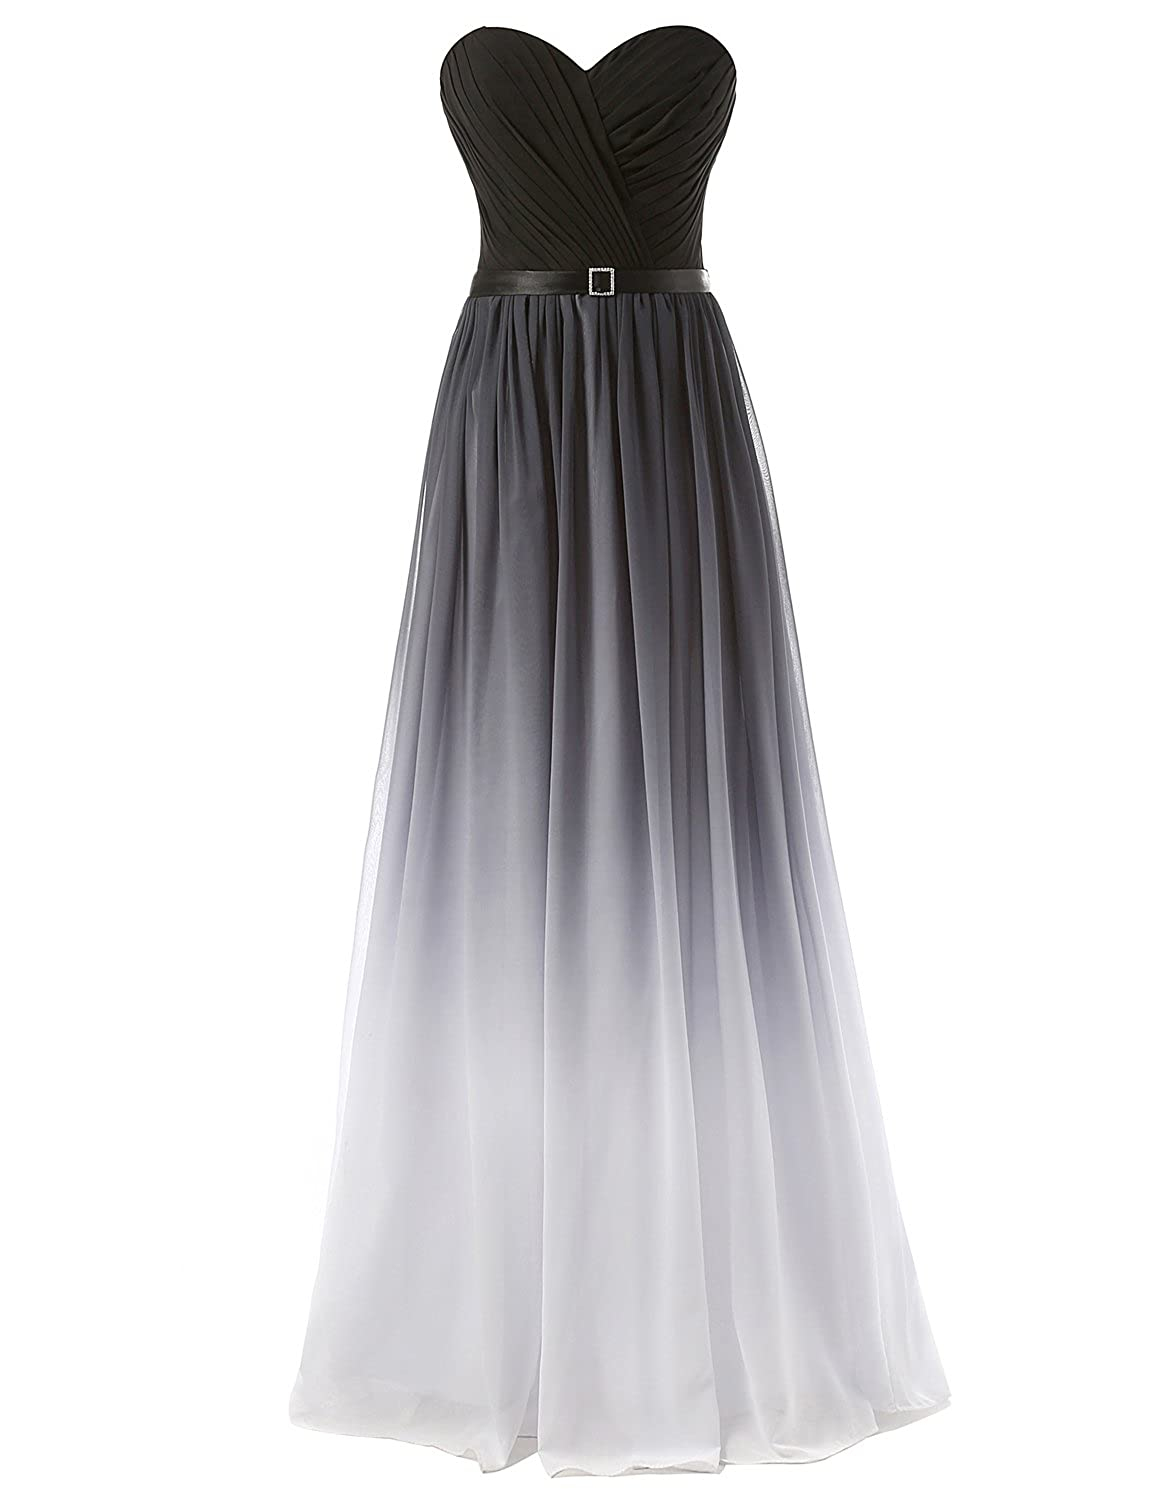 Favebridal Women's Long A-line Evening Dresses Gradient Ramp Prom Gowns SD313